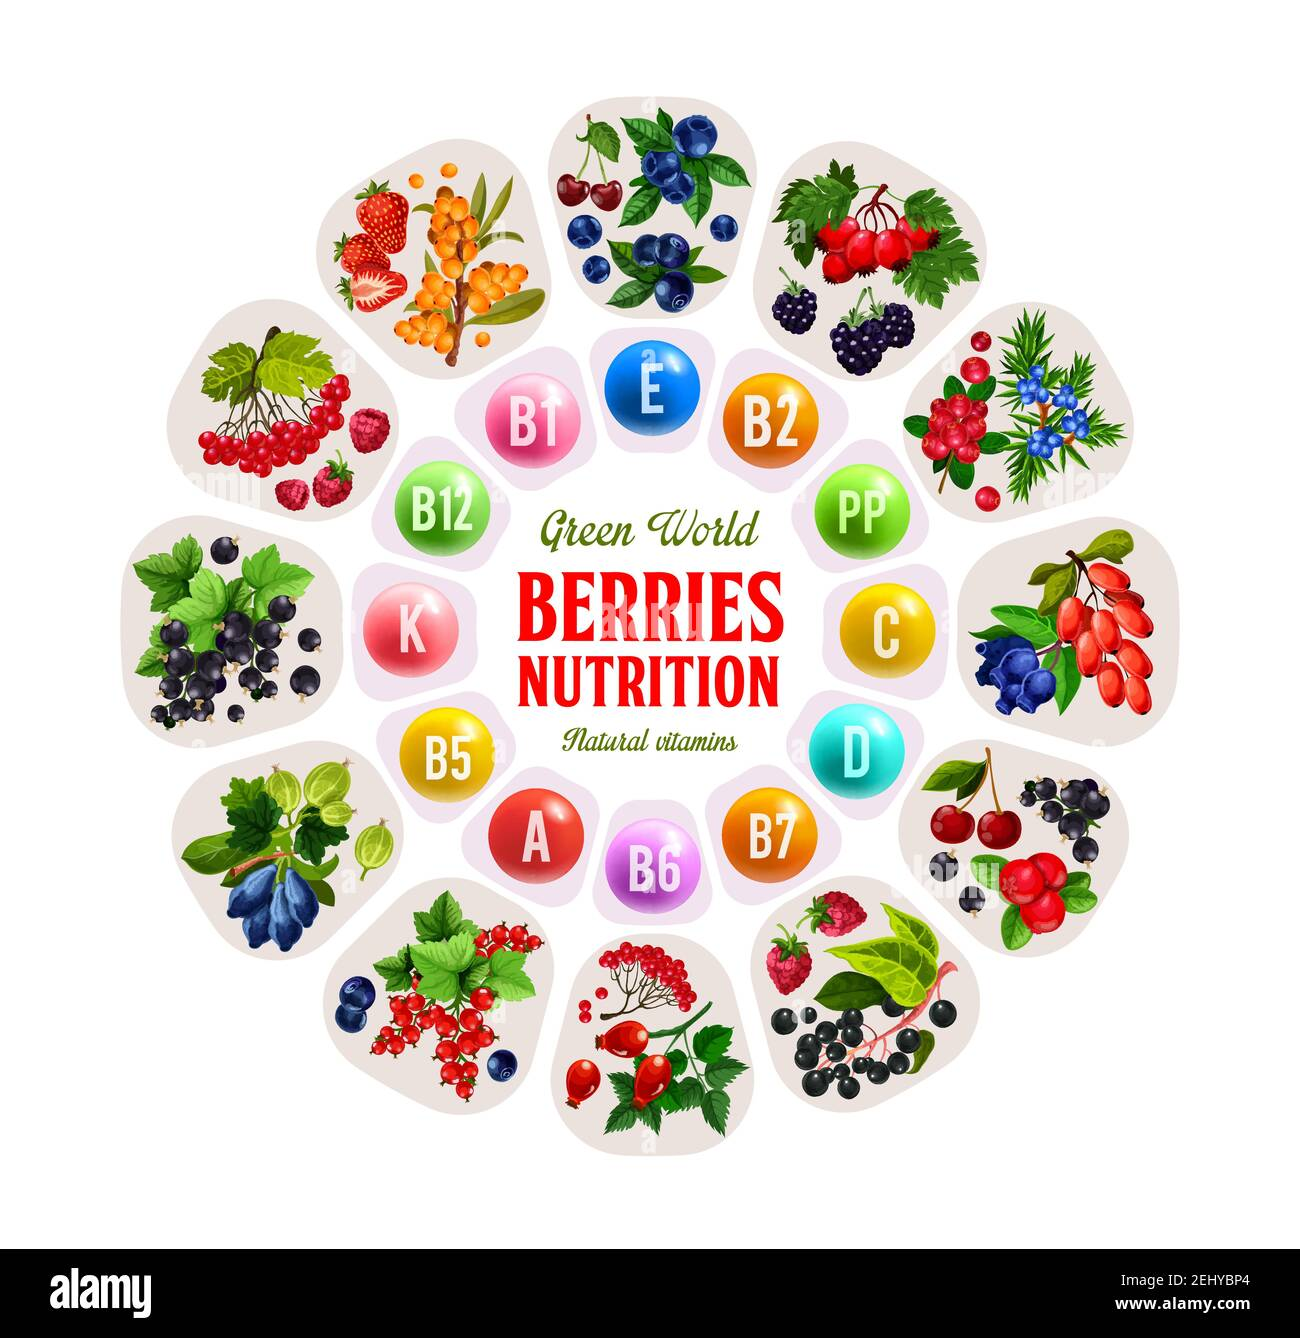 Vitamins in berries, nutrition benefits of strawberry, cherry and ...